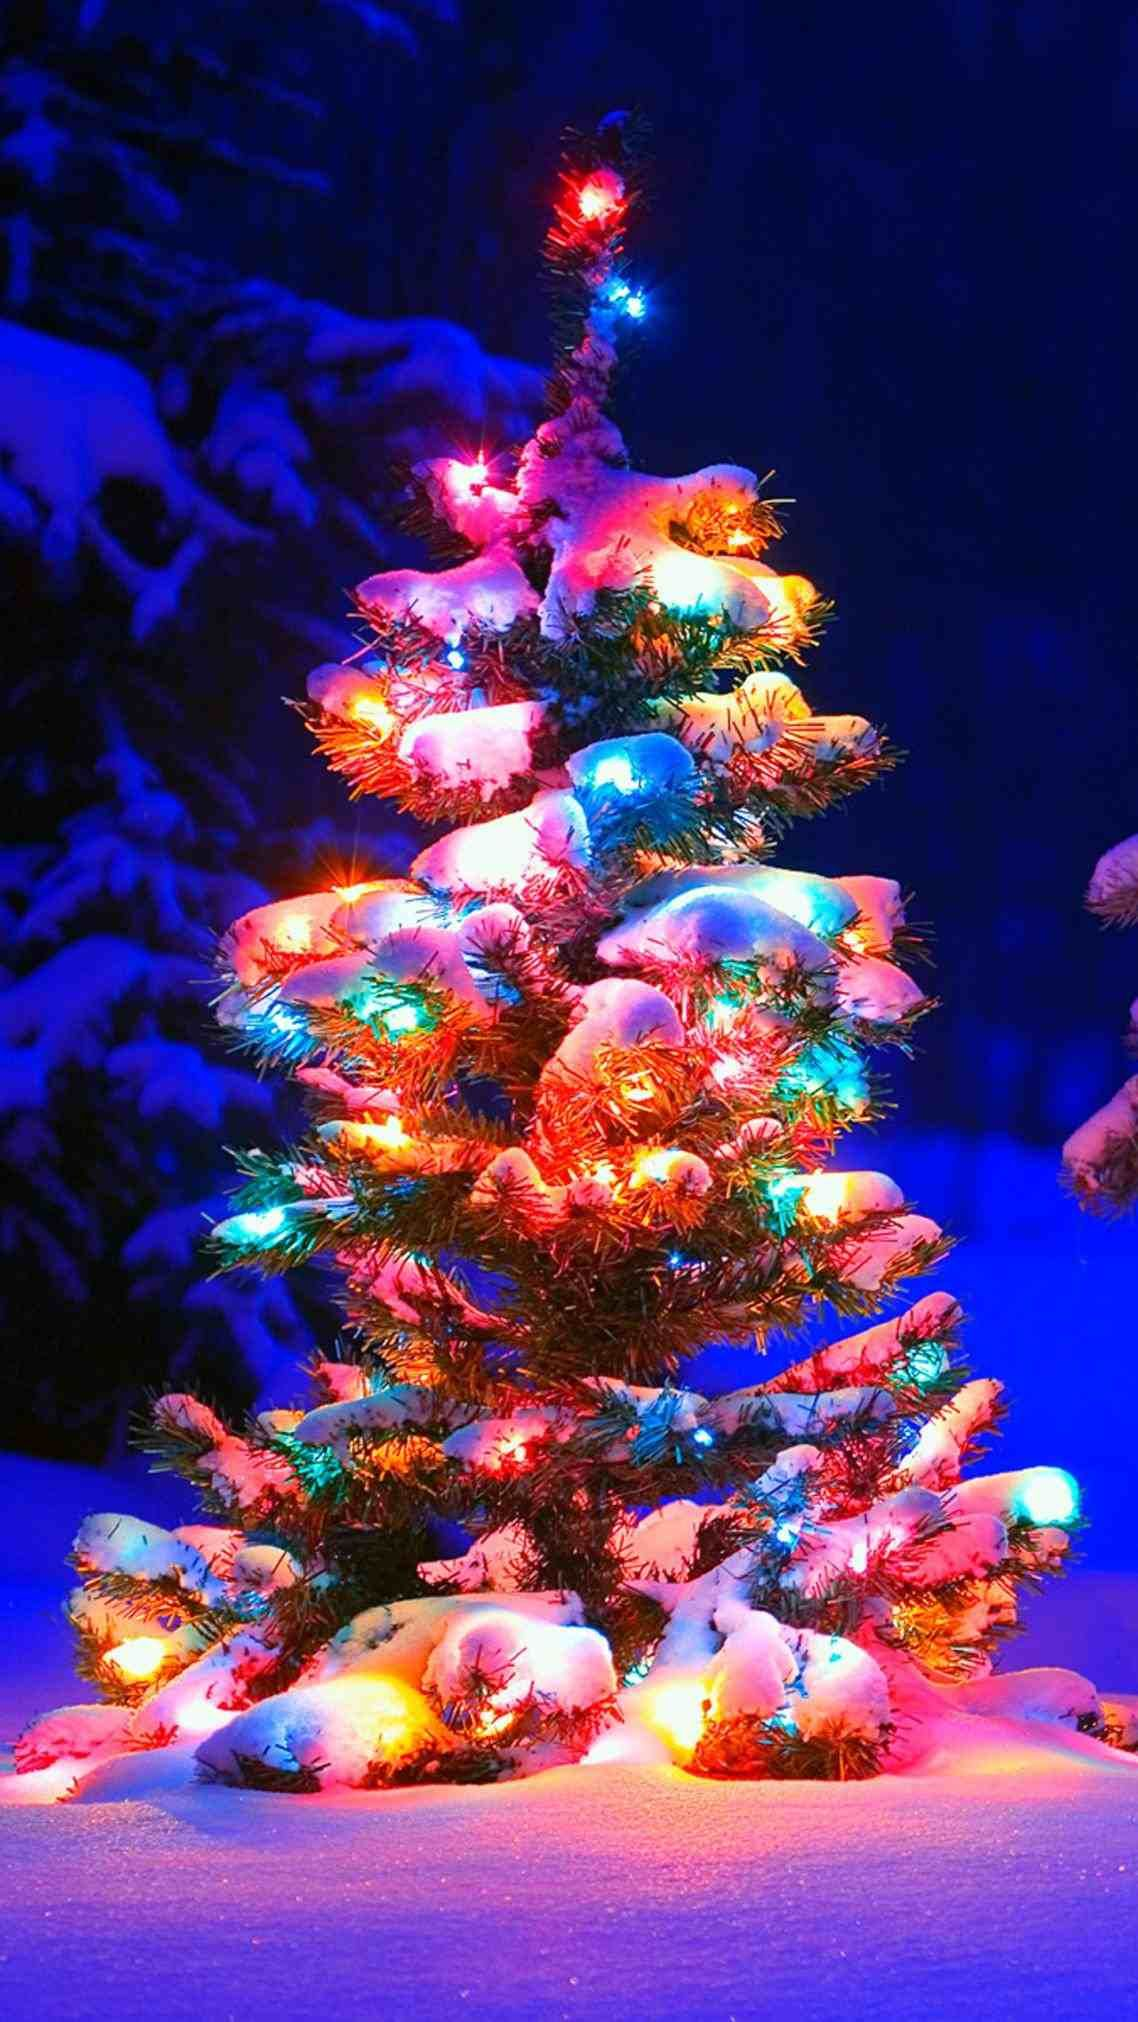 New Post Christmas Lights Snow Wallpaper Iphone Interesting Visit Xmastsite